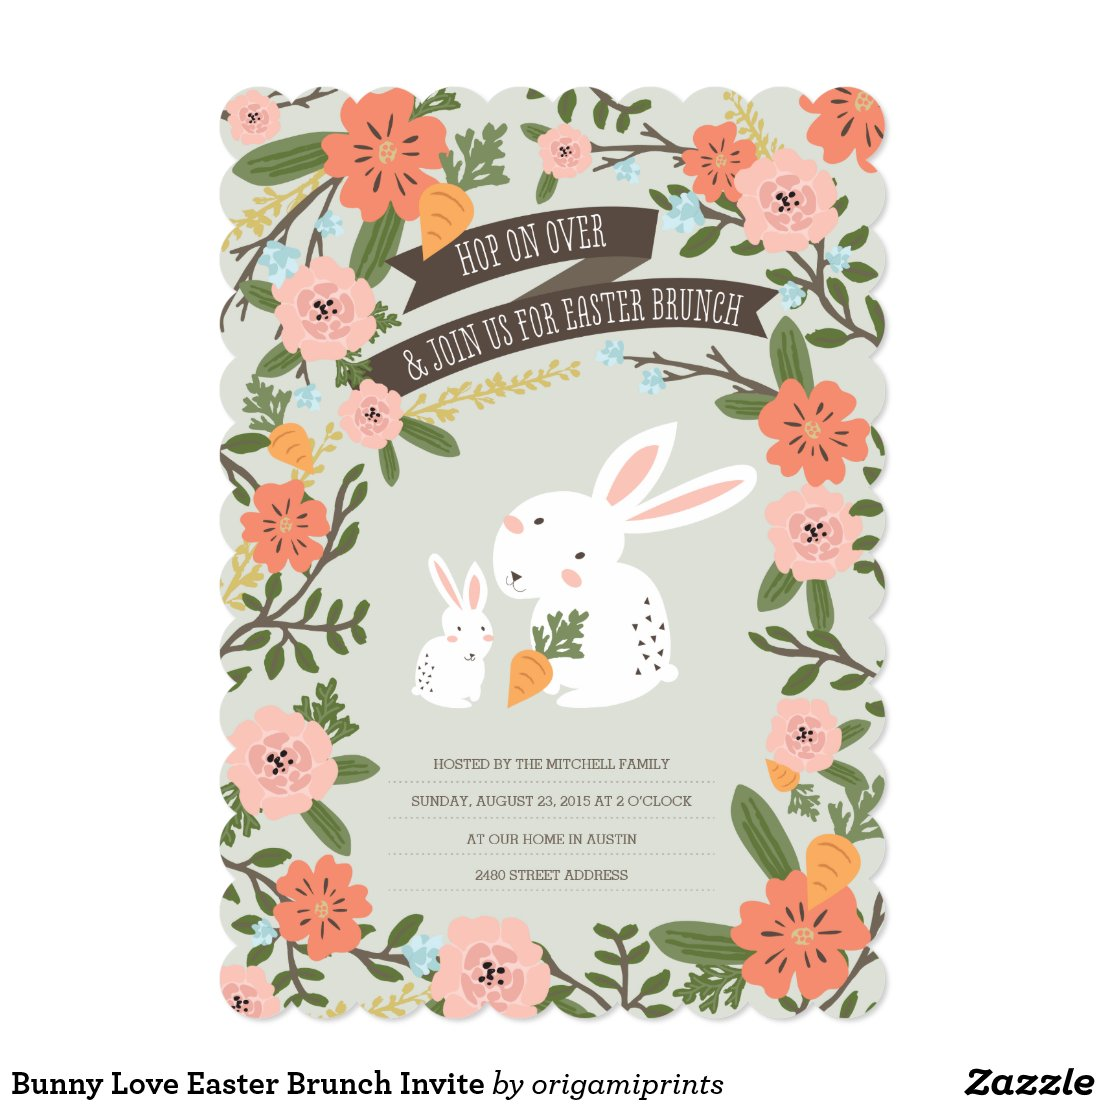 Bunny Love Easter Brunch Invite